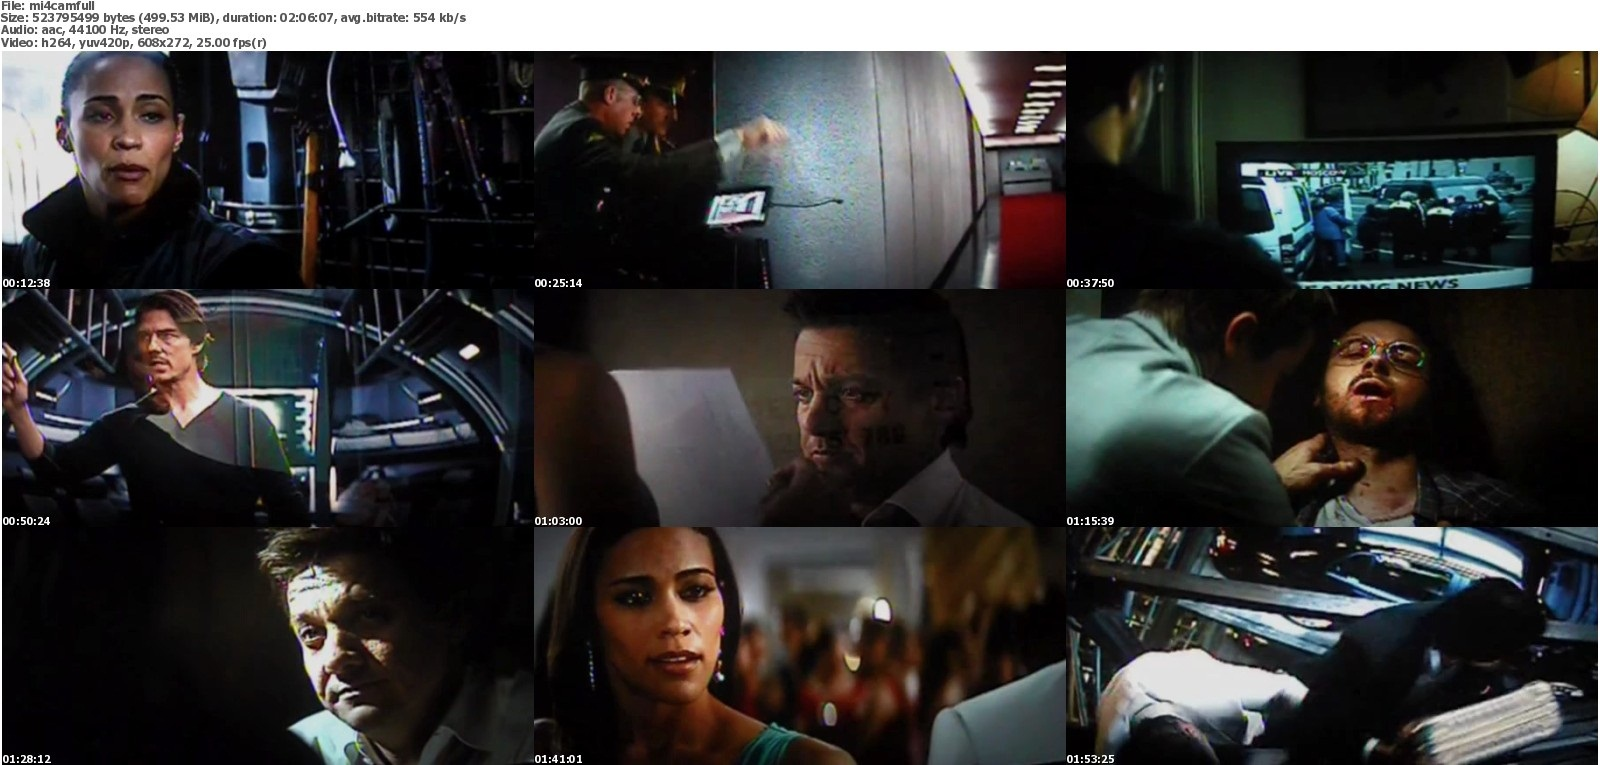 Mission impossible 4 full movie with english subtitles : Trailers